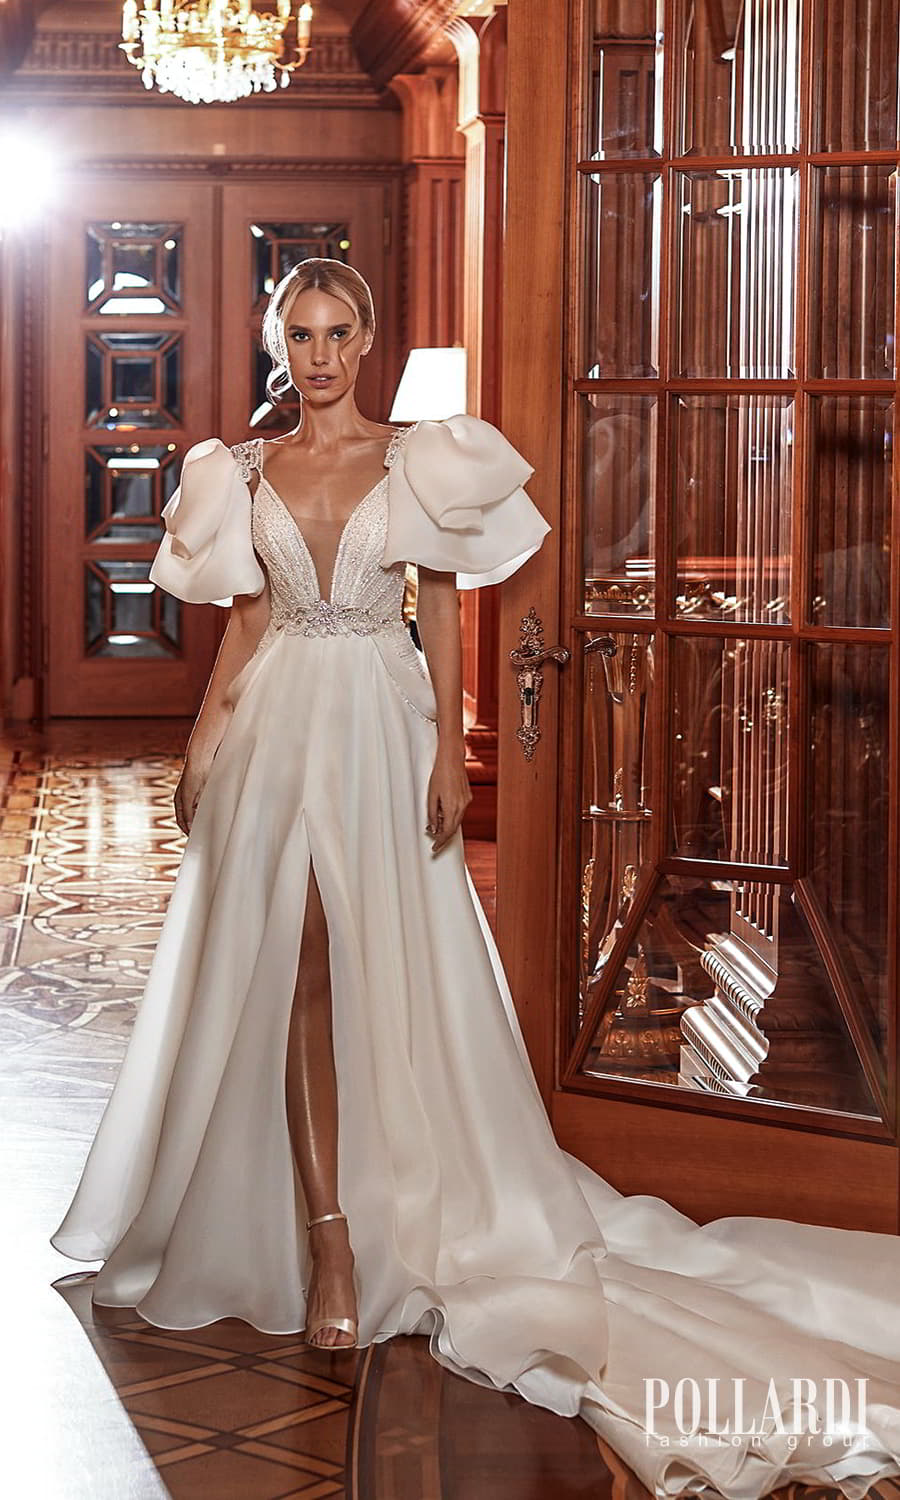 pollardi 2022 your triumph bridal sleeveless straps plunging neckline embellished bodice a line ball gown wedding dress chapel train (one and only) mv